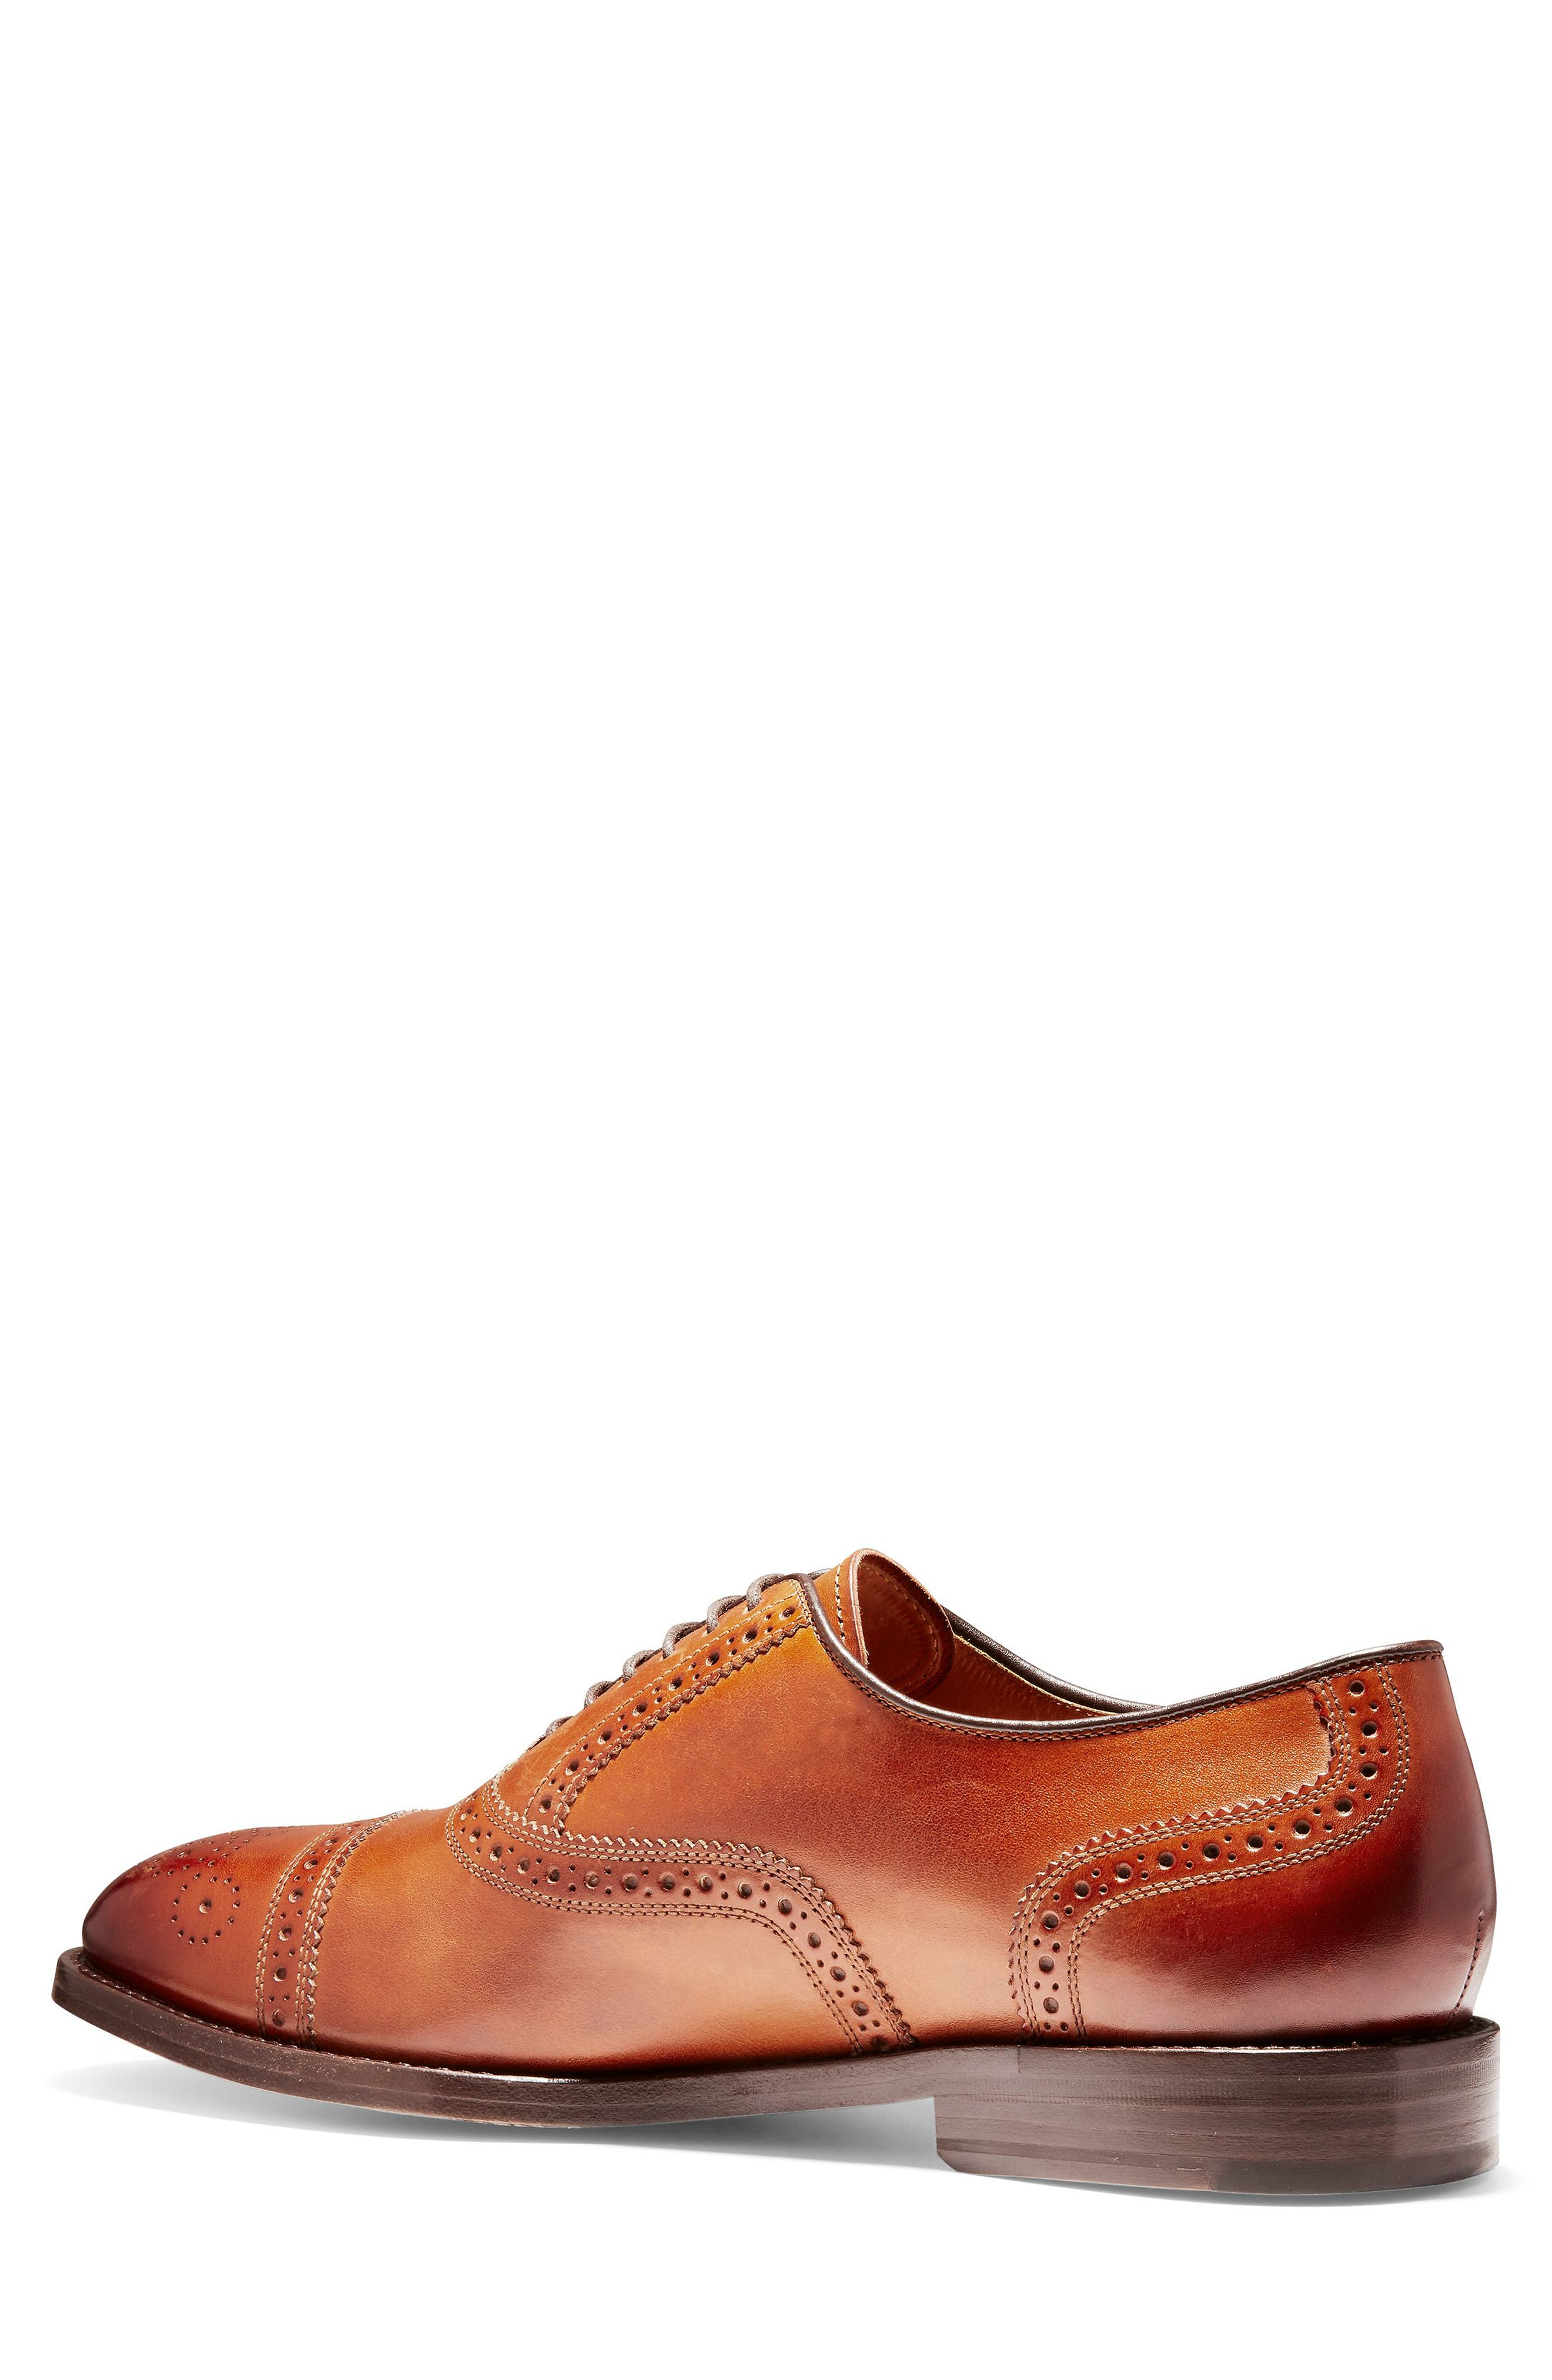 COLE HAAN, American Classics Kneeland Cap Toe Oxford, Alternate thumbnail 2, color, BRITISH TAN LEATHER